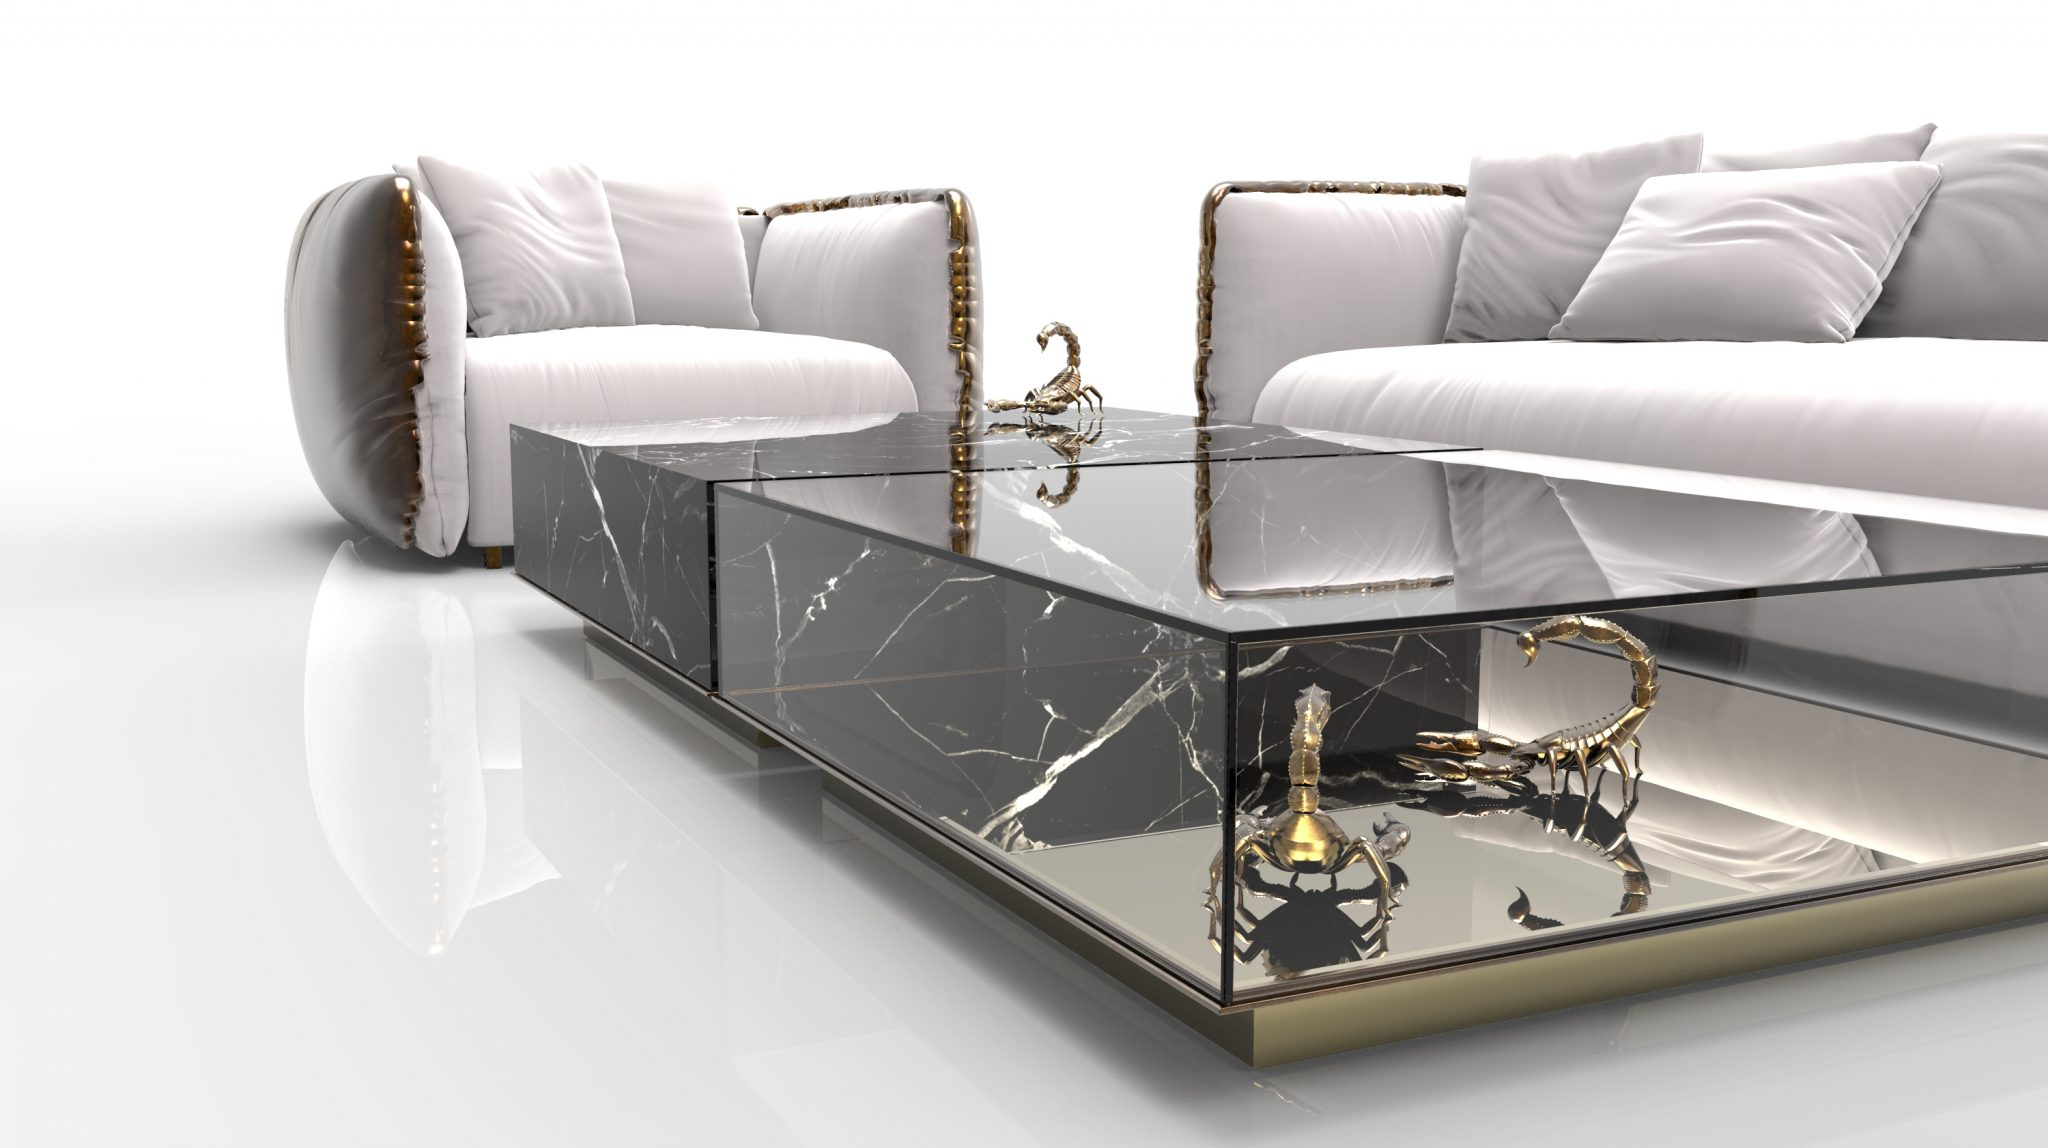 Marble Coffee and Side Table Designs On Home Interiors Metamorphosis Center Table 3